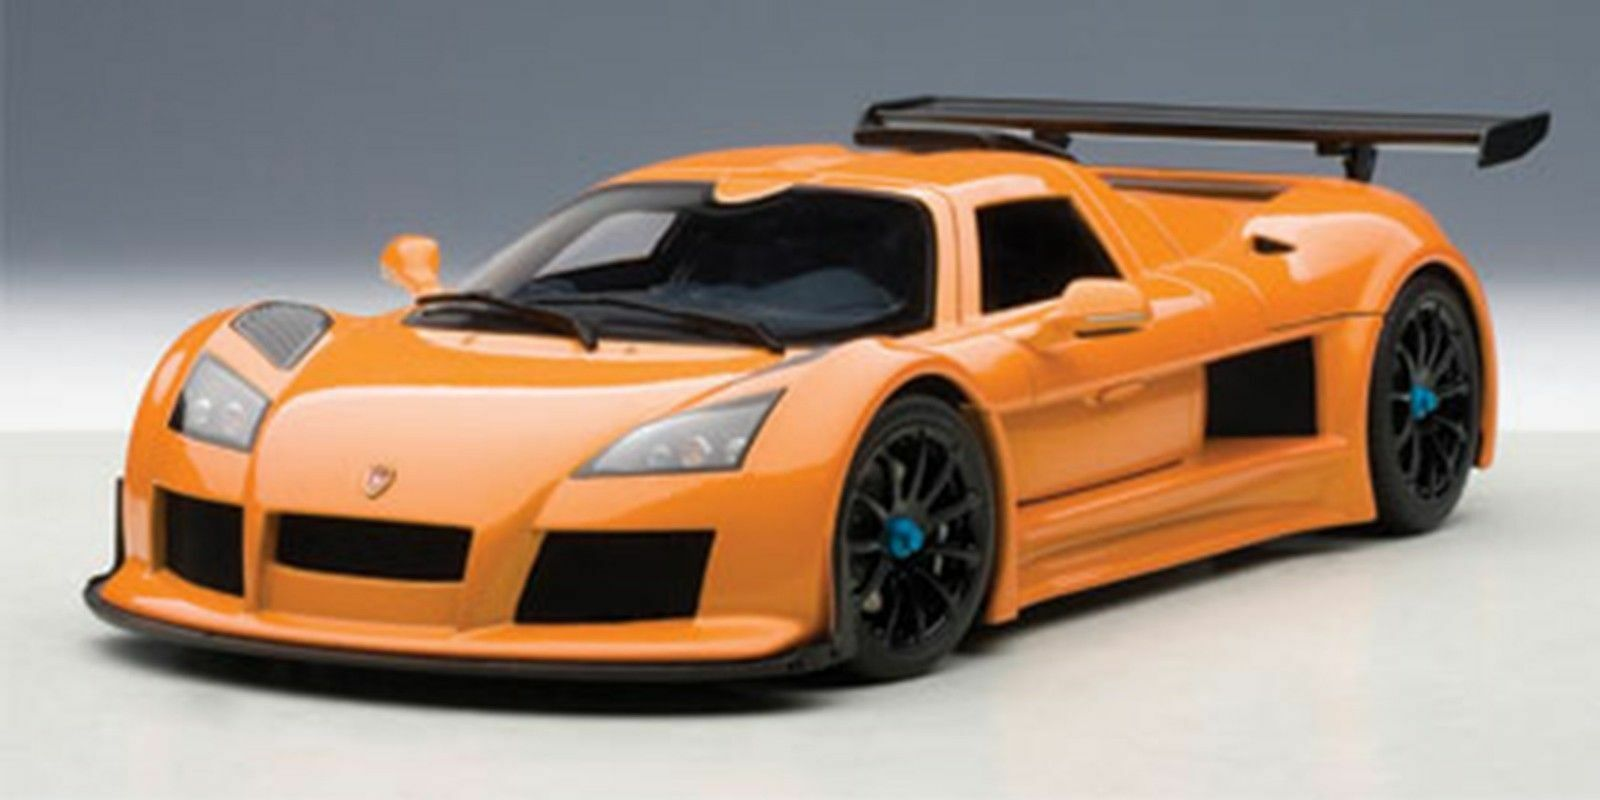 AUTOART Gumpert Apollo S métallisé Orange 1 18  Nouvelle Version